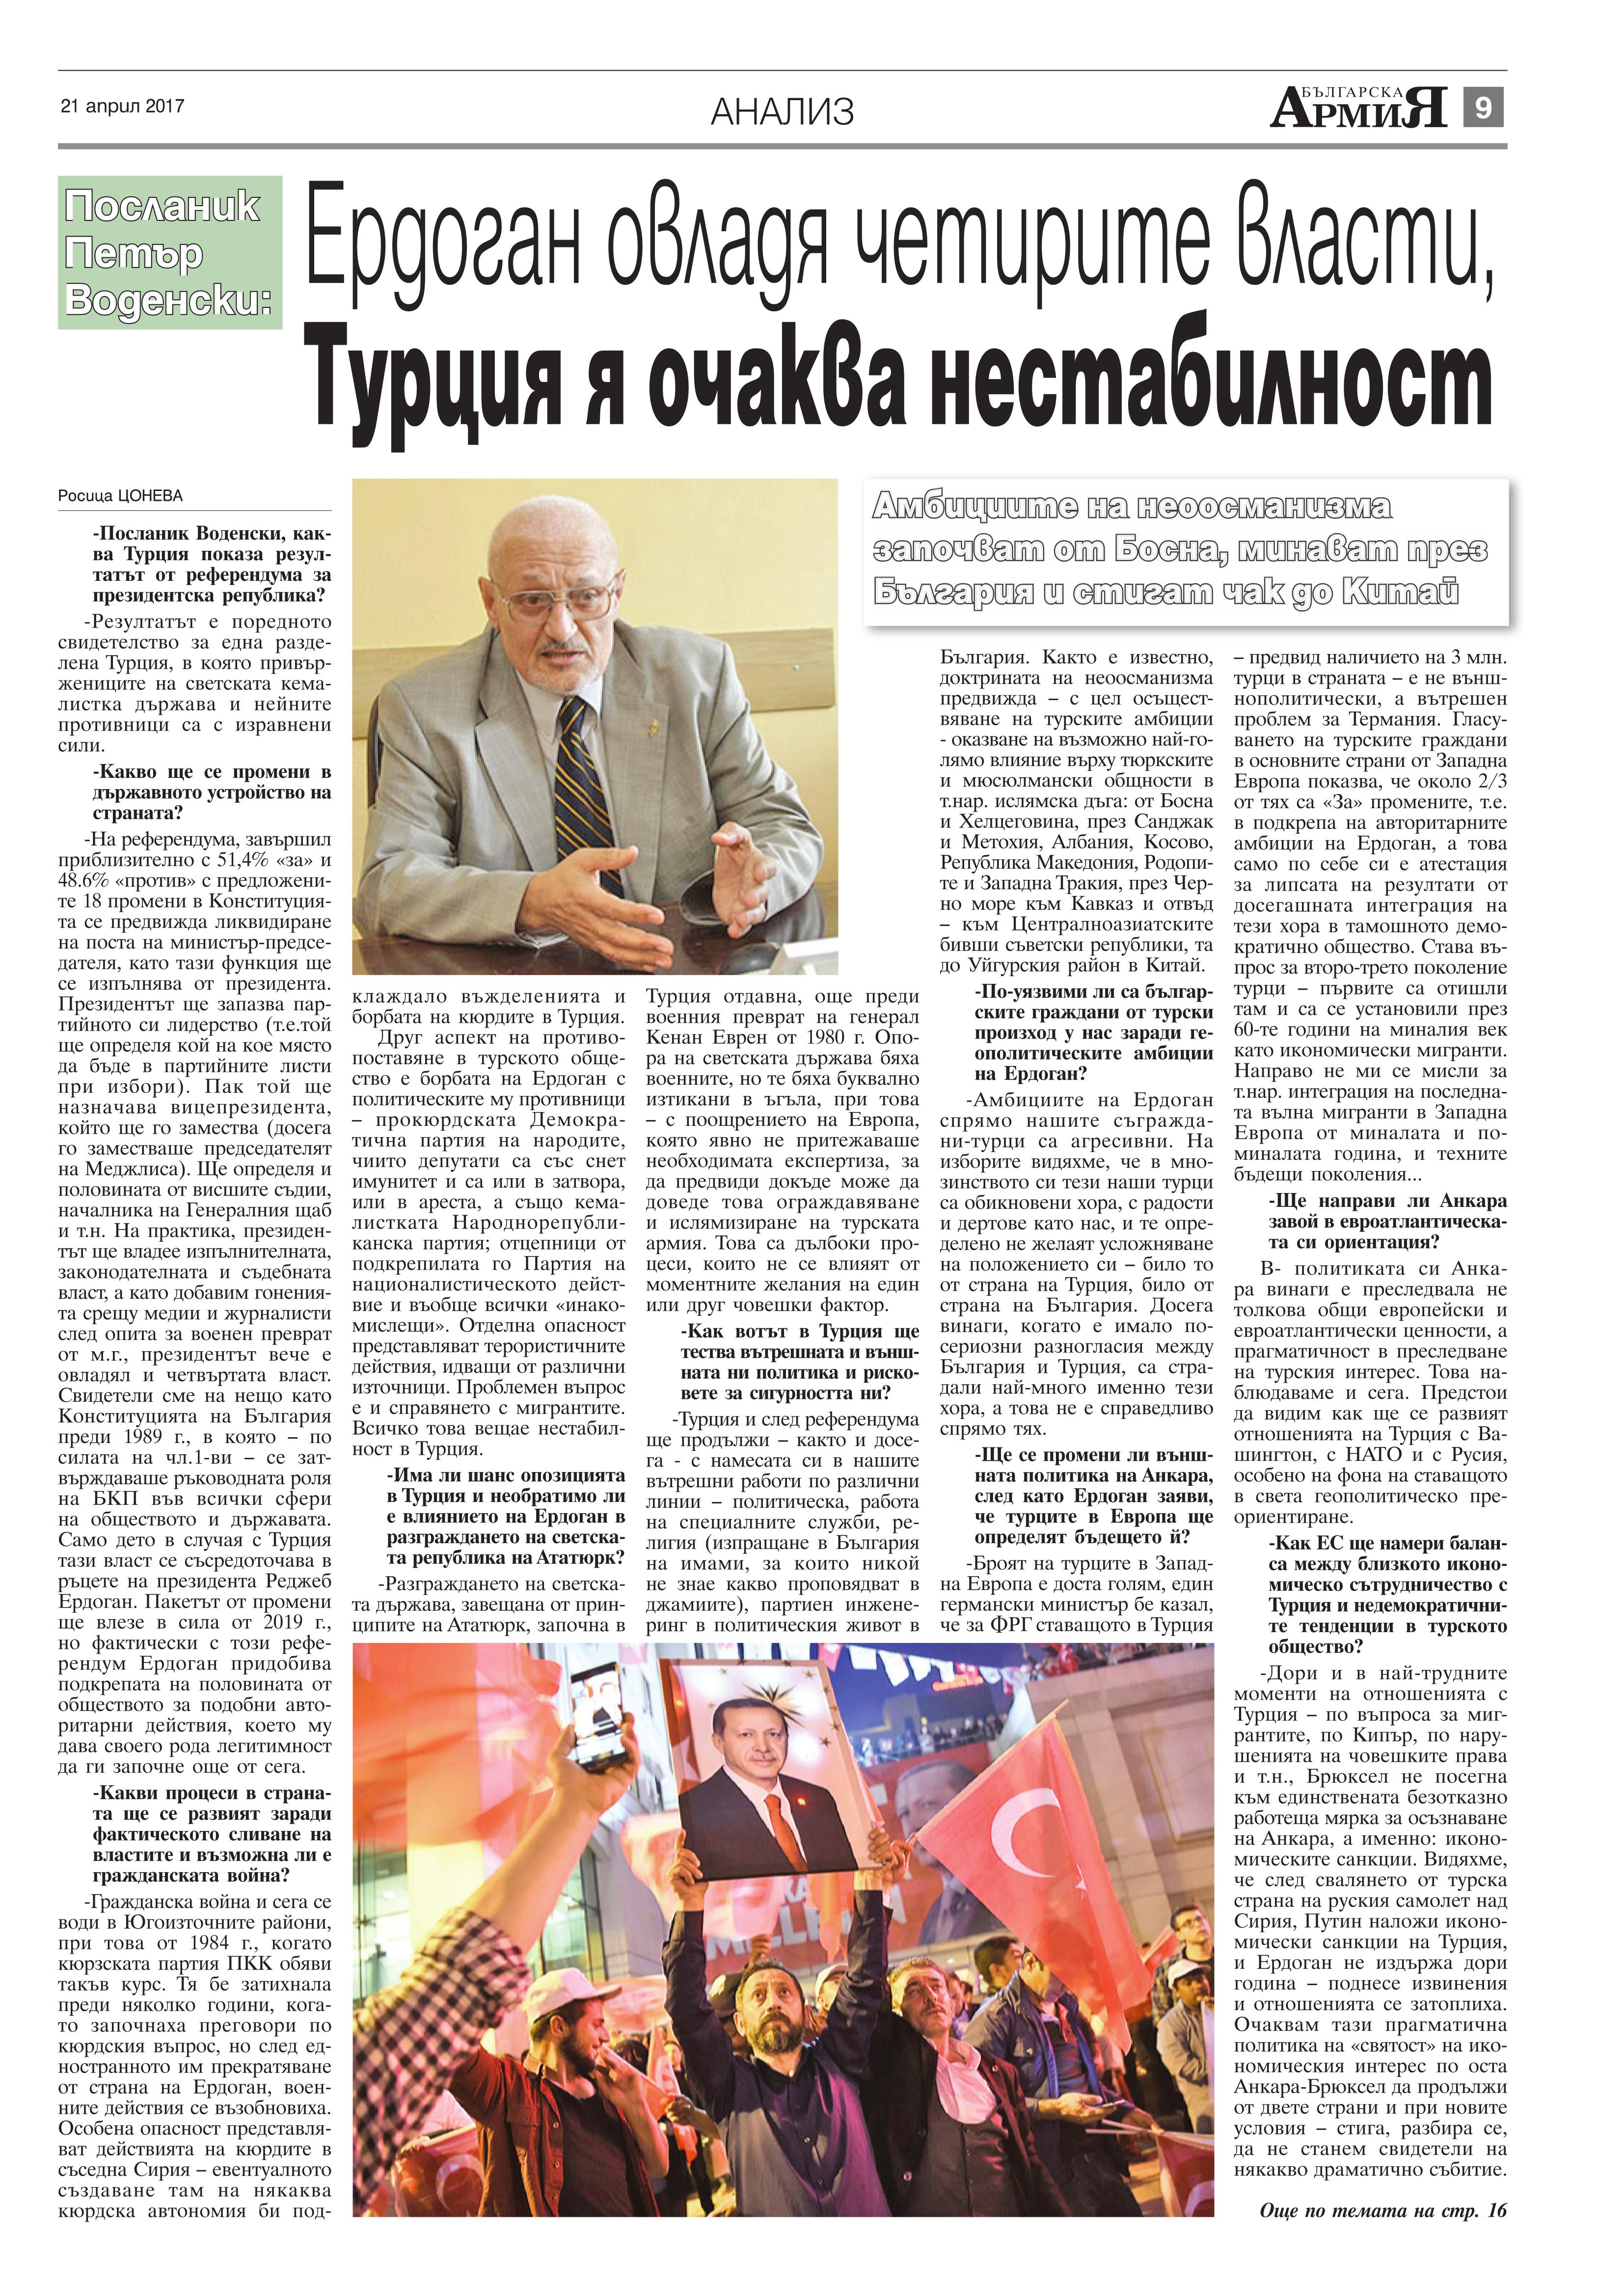 http://armymedia.bg/wp-content/uploads/2015/06/09.page1_-19.jpg